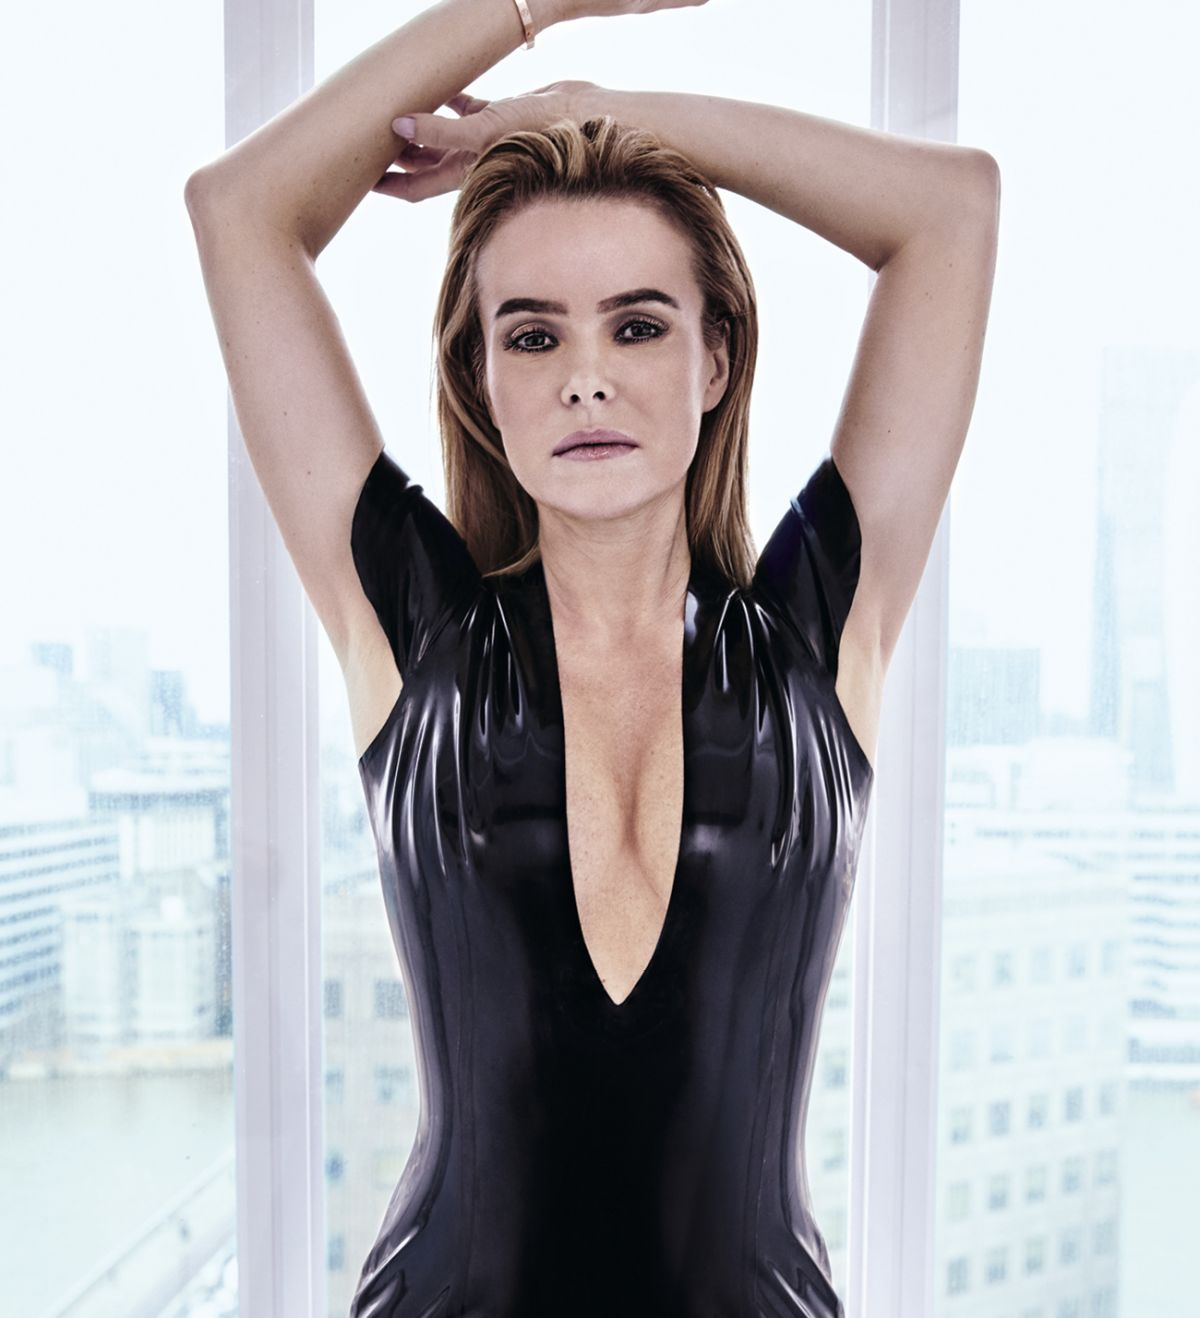 465aba473c99a AMANDA HOLDEN in a Black Swimsuit on the Set of a Photoshoot 04 02 ...